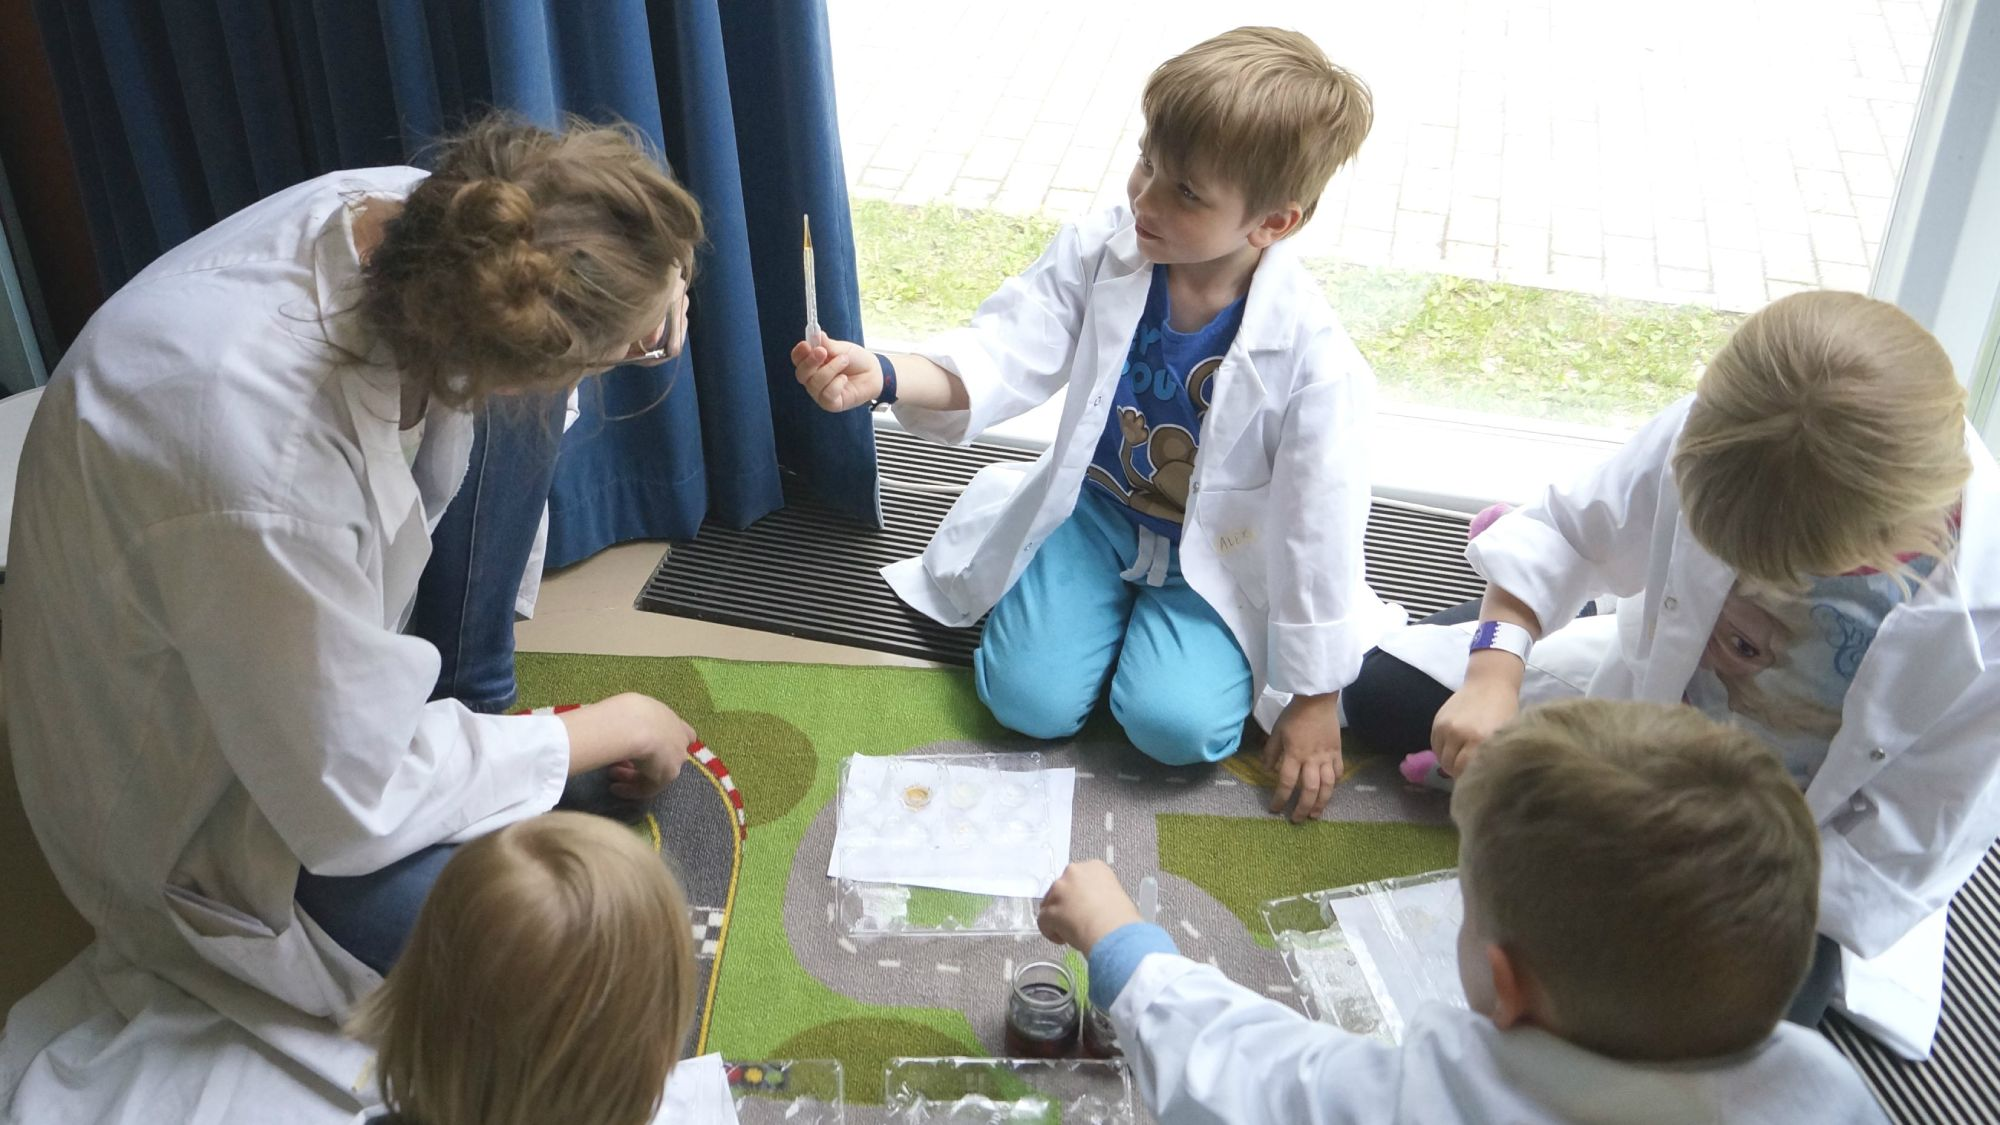 Making use of children's instinct to wonder and ponder is at the heart of Kide Science's philosophy.